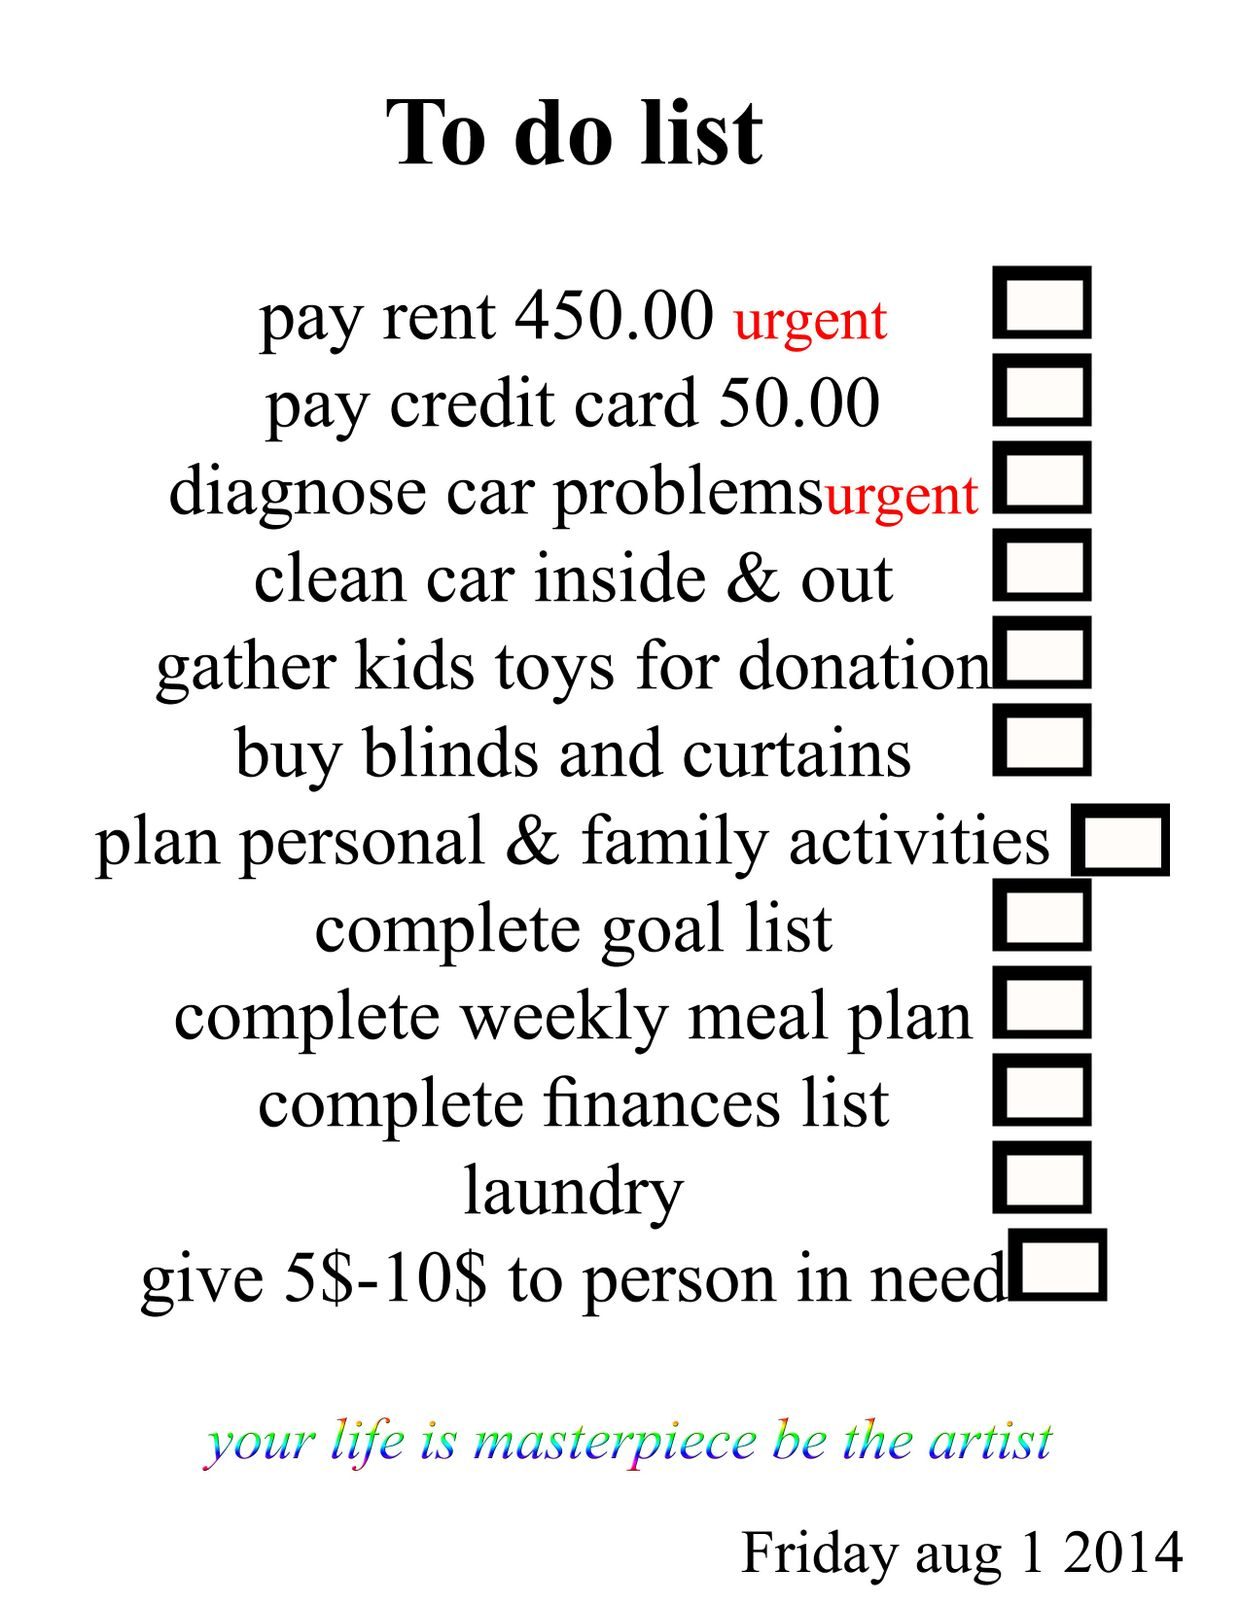 To do list example image